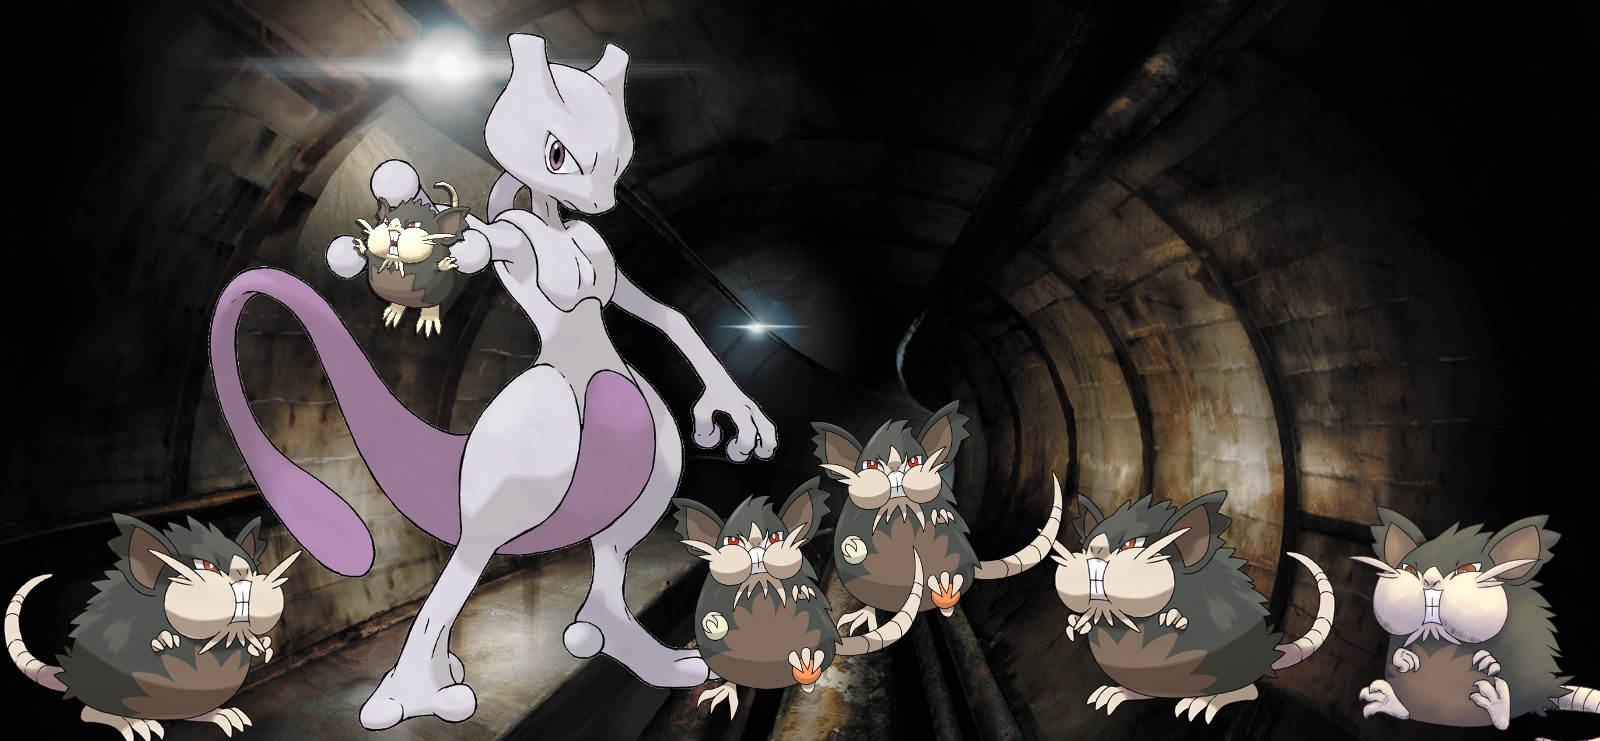 Photo of Pokemon Go Epic Battle Alolan Raticate vs Mewtwo, Finish Him!